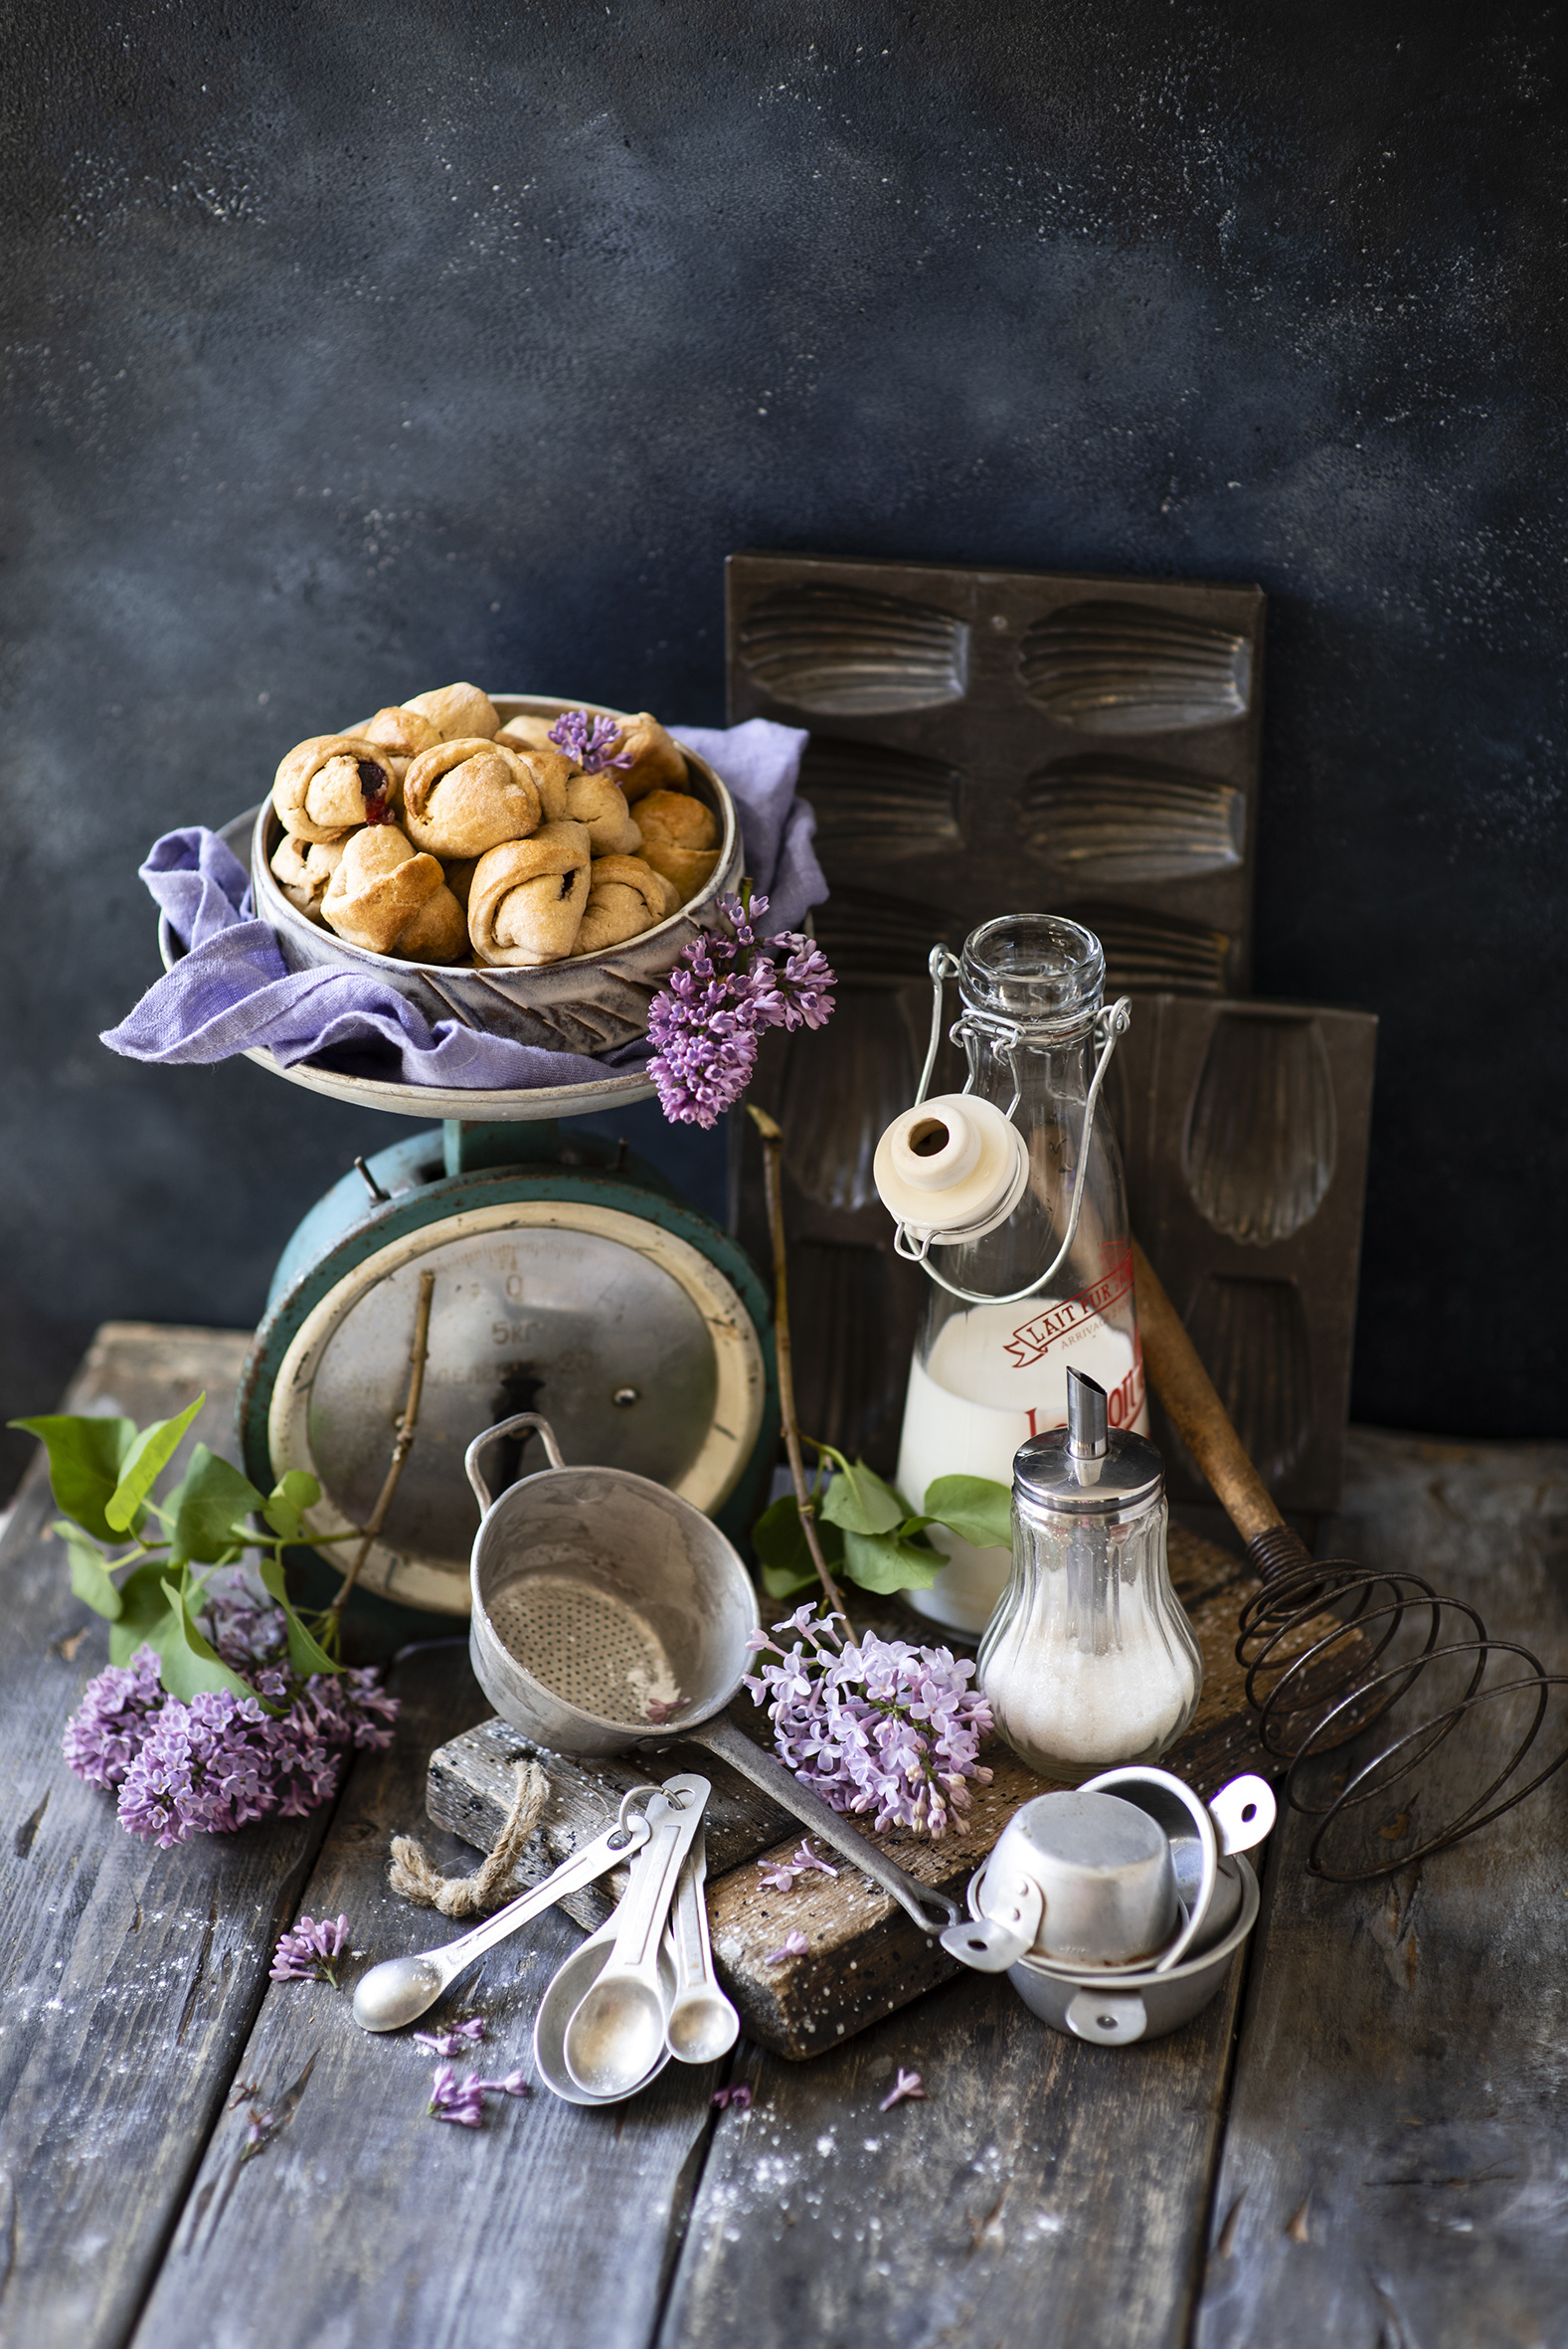 Pictures Milk Lilac Flowers Food Spoon Bottle Branches Pastry Still-life boards  for Mobile phone flower Syringa bottles baking Wood planks